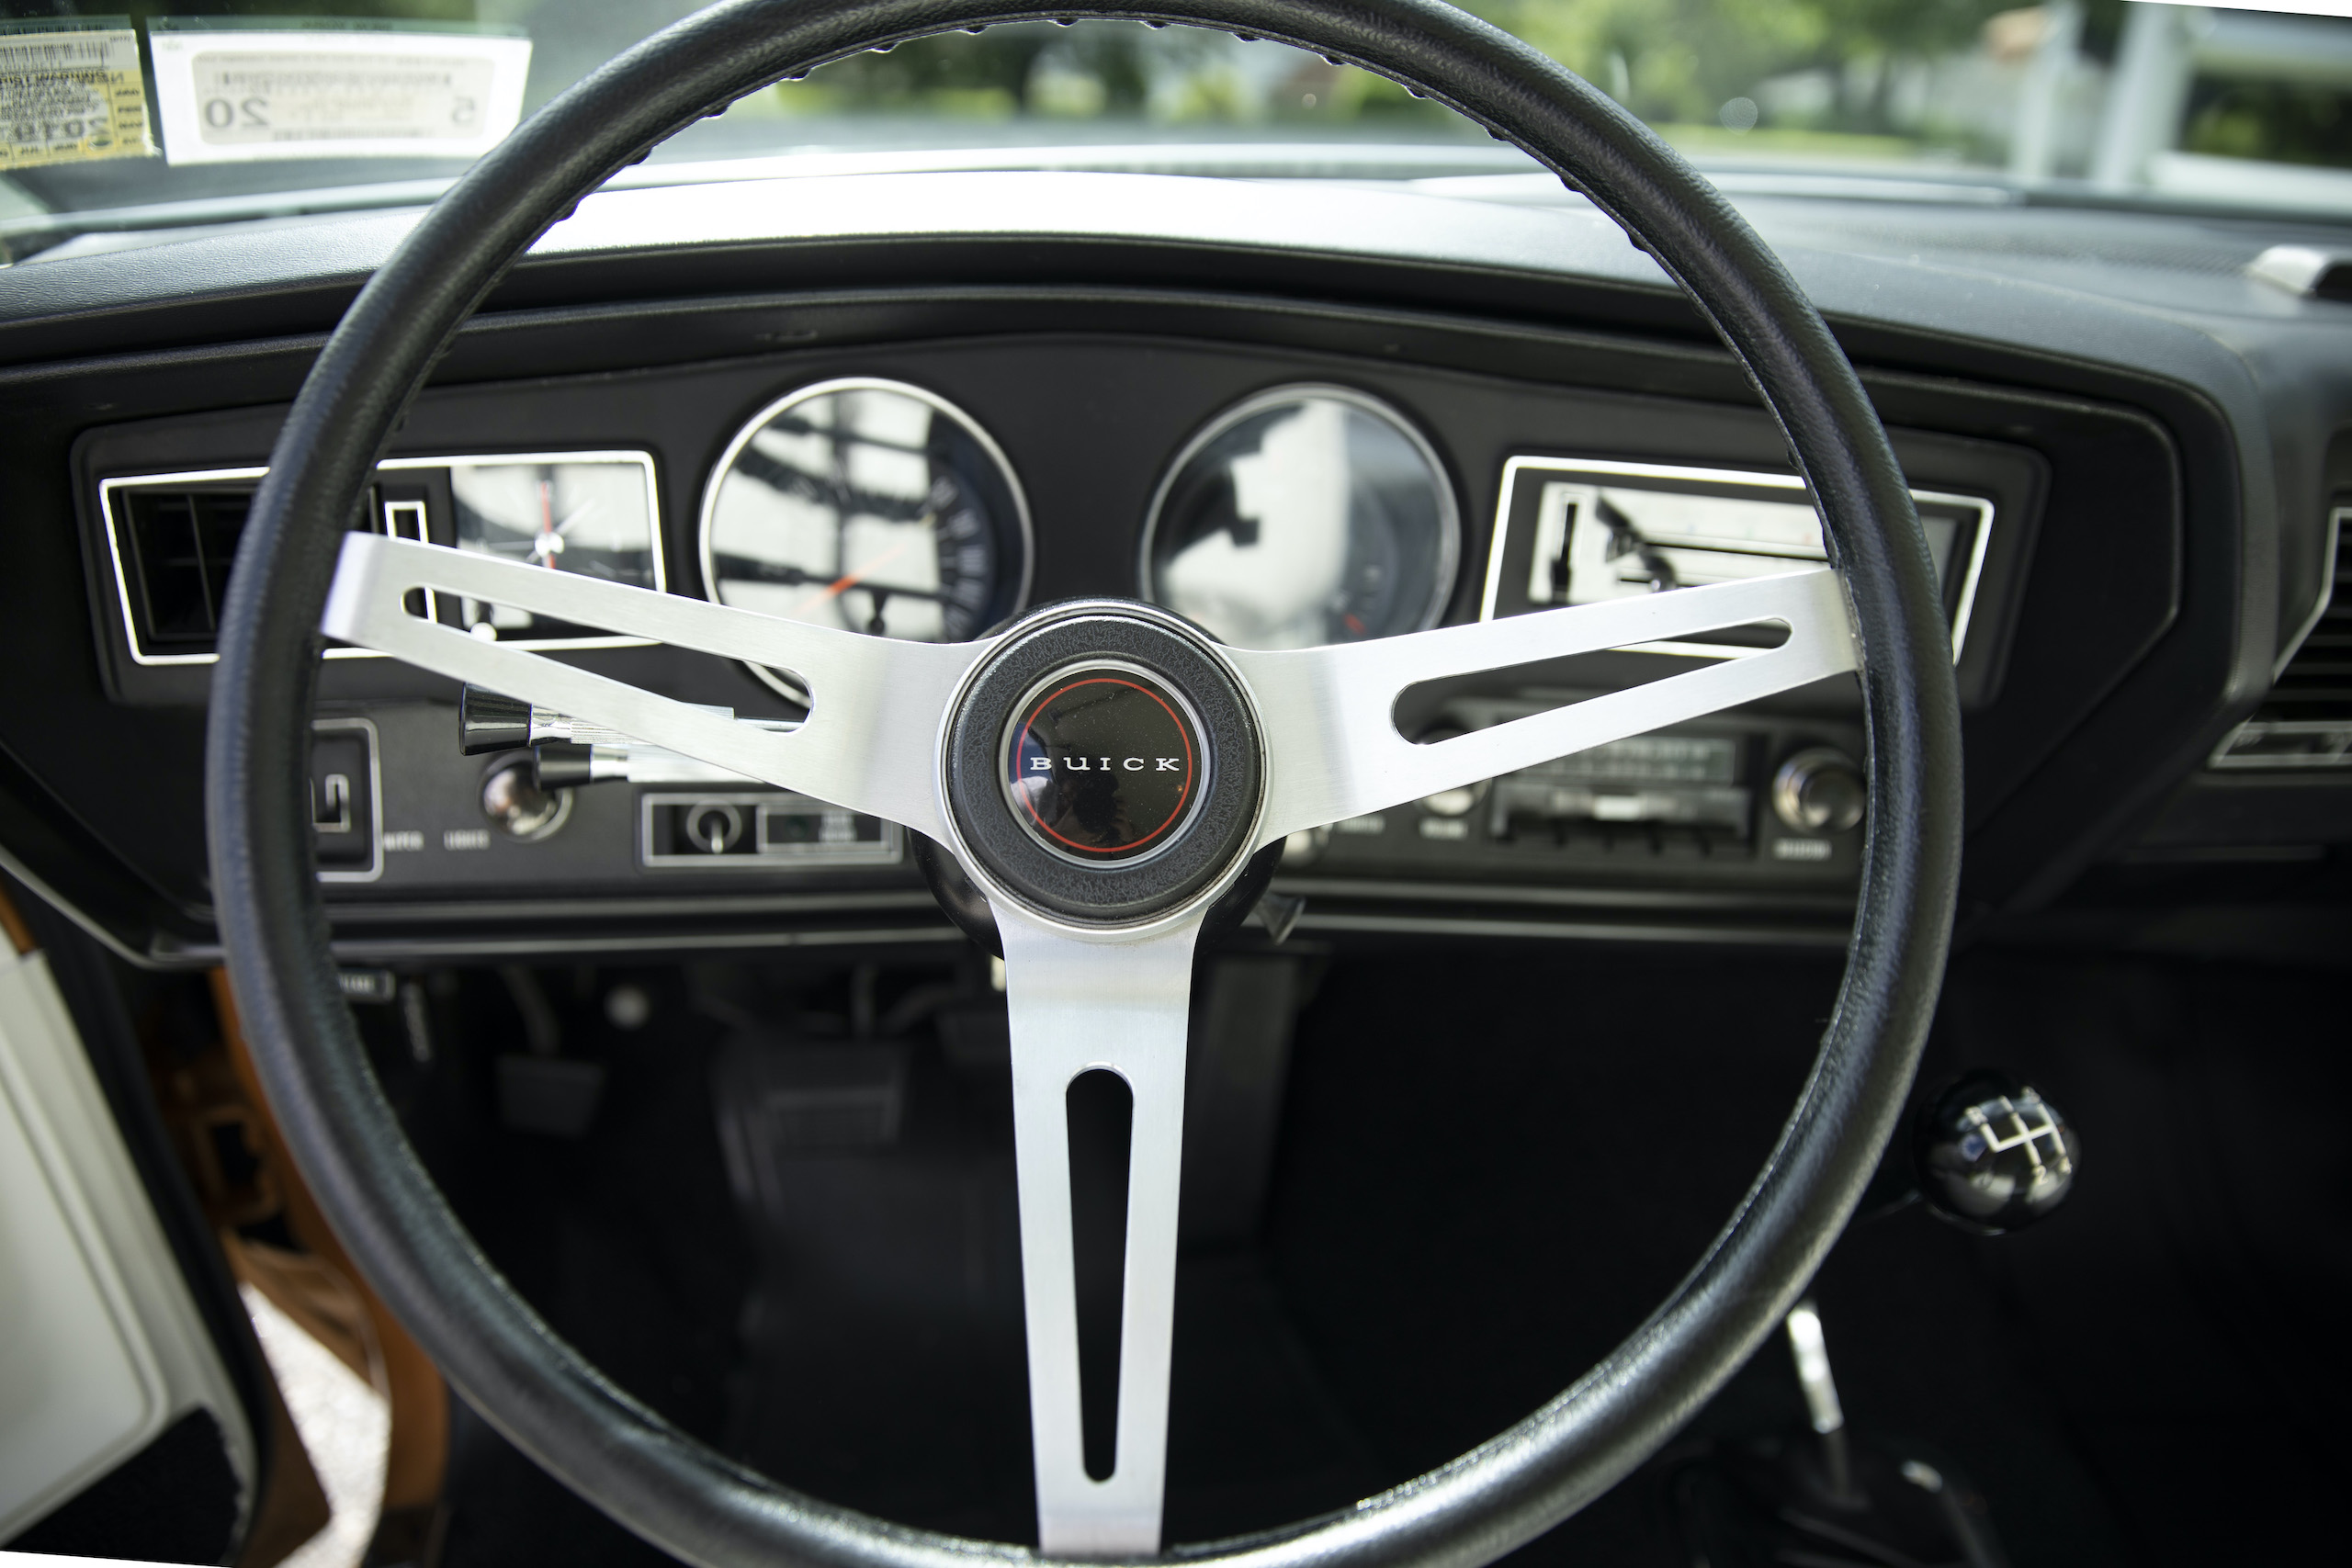 1973 Buick GS Stage 1 gran sport coupe steering wheel